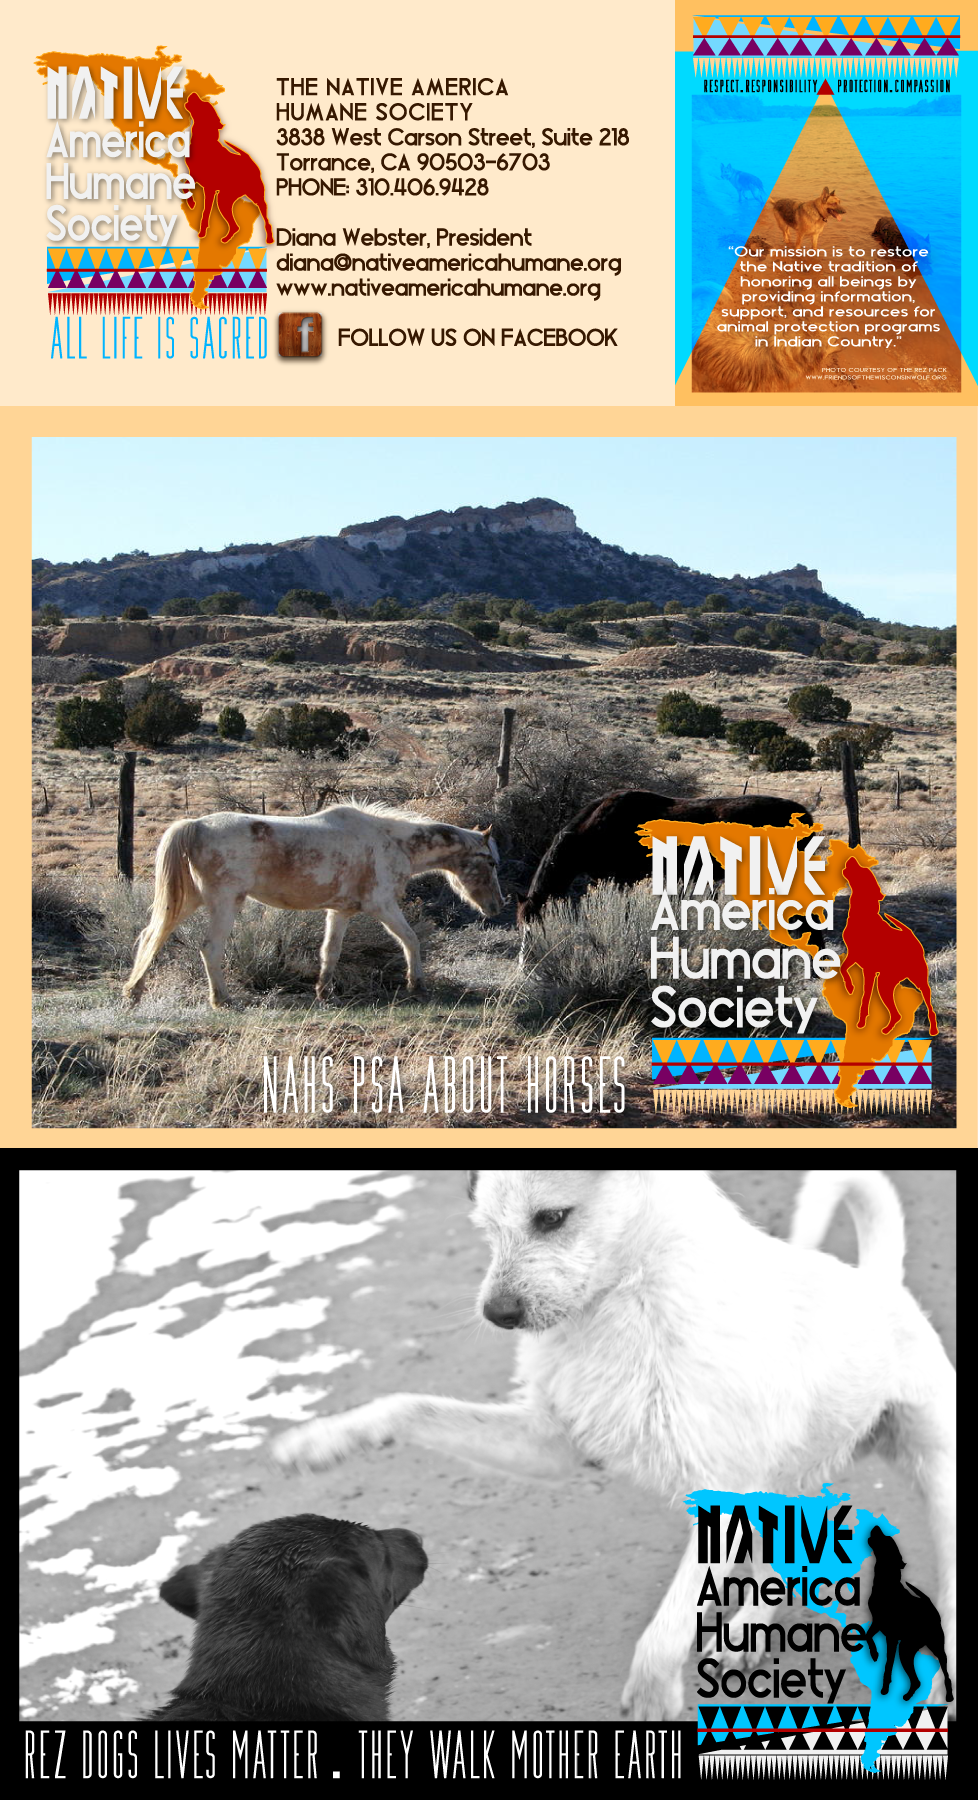 Logo Brand Print And Social Media Design For Native America Humane Society California Sample Photo Of Rez Puppies B Humane Society Native America Society